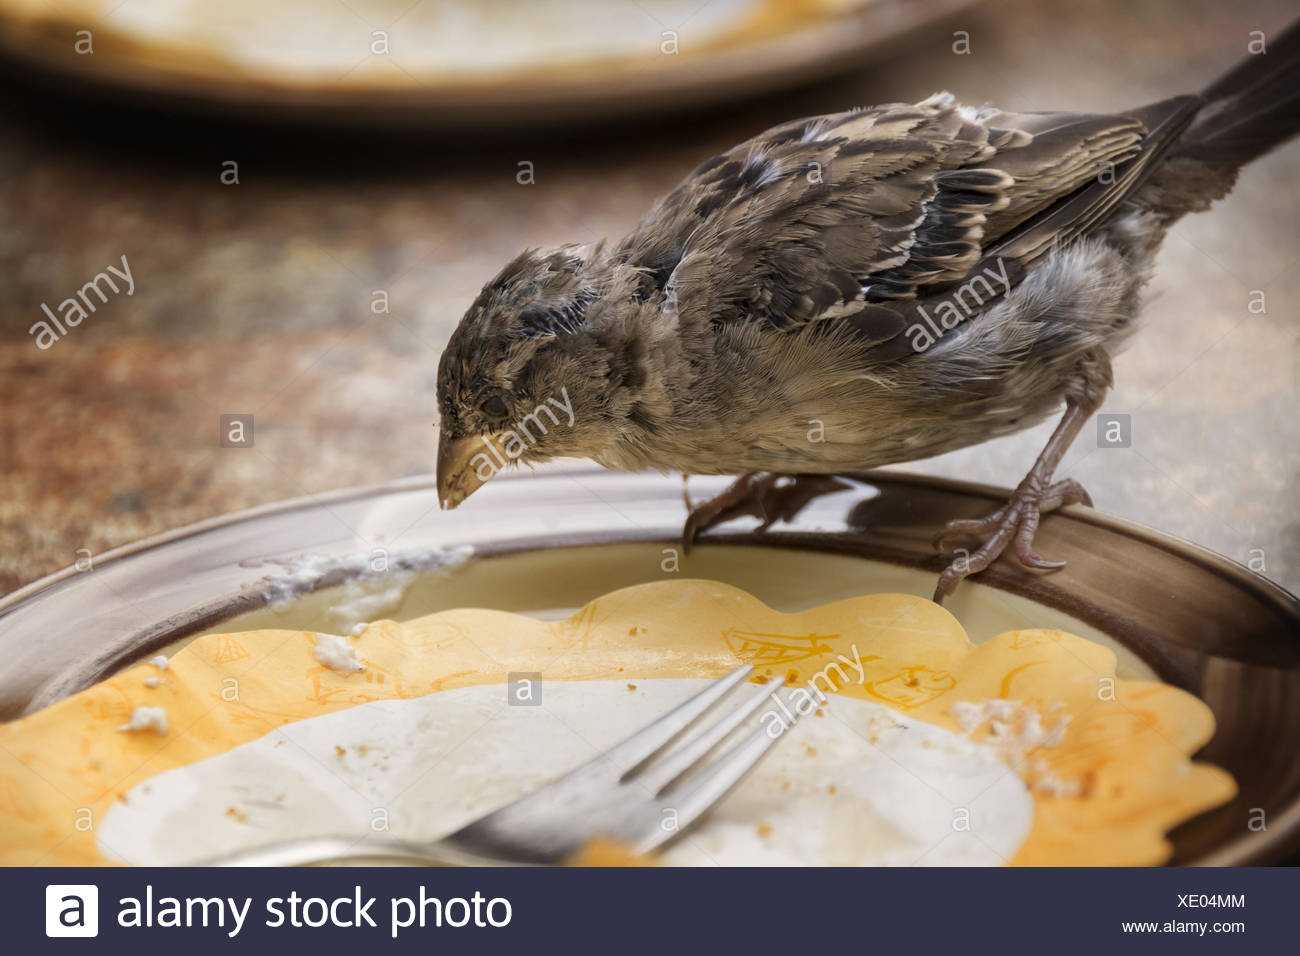 sparrow on a plate - Stock Image